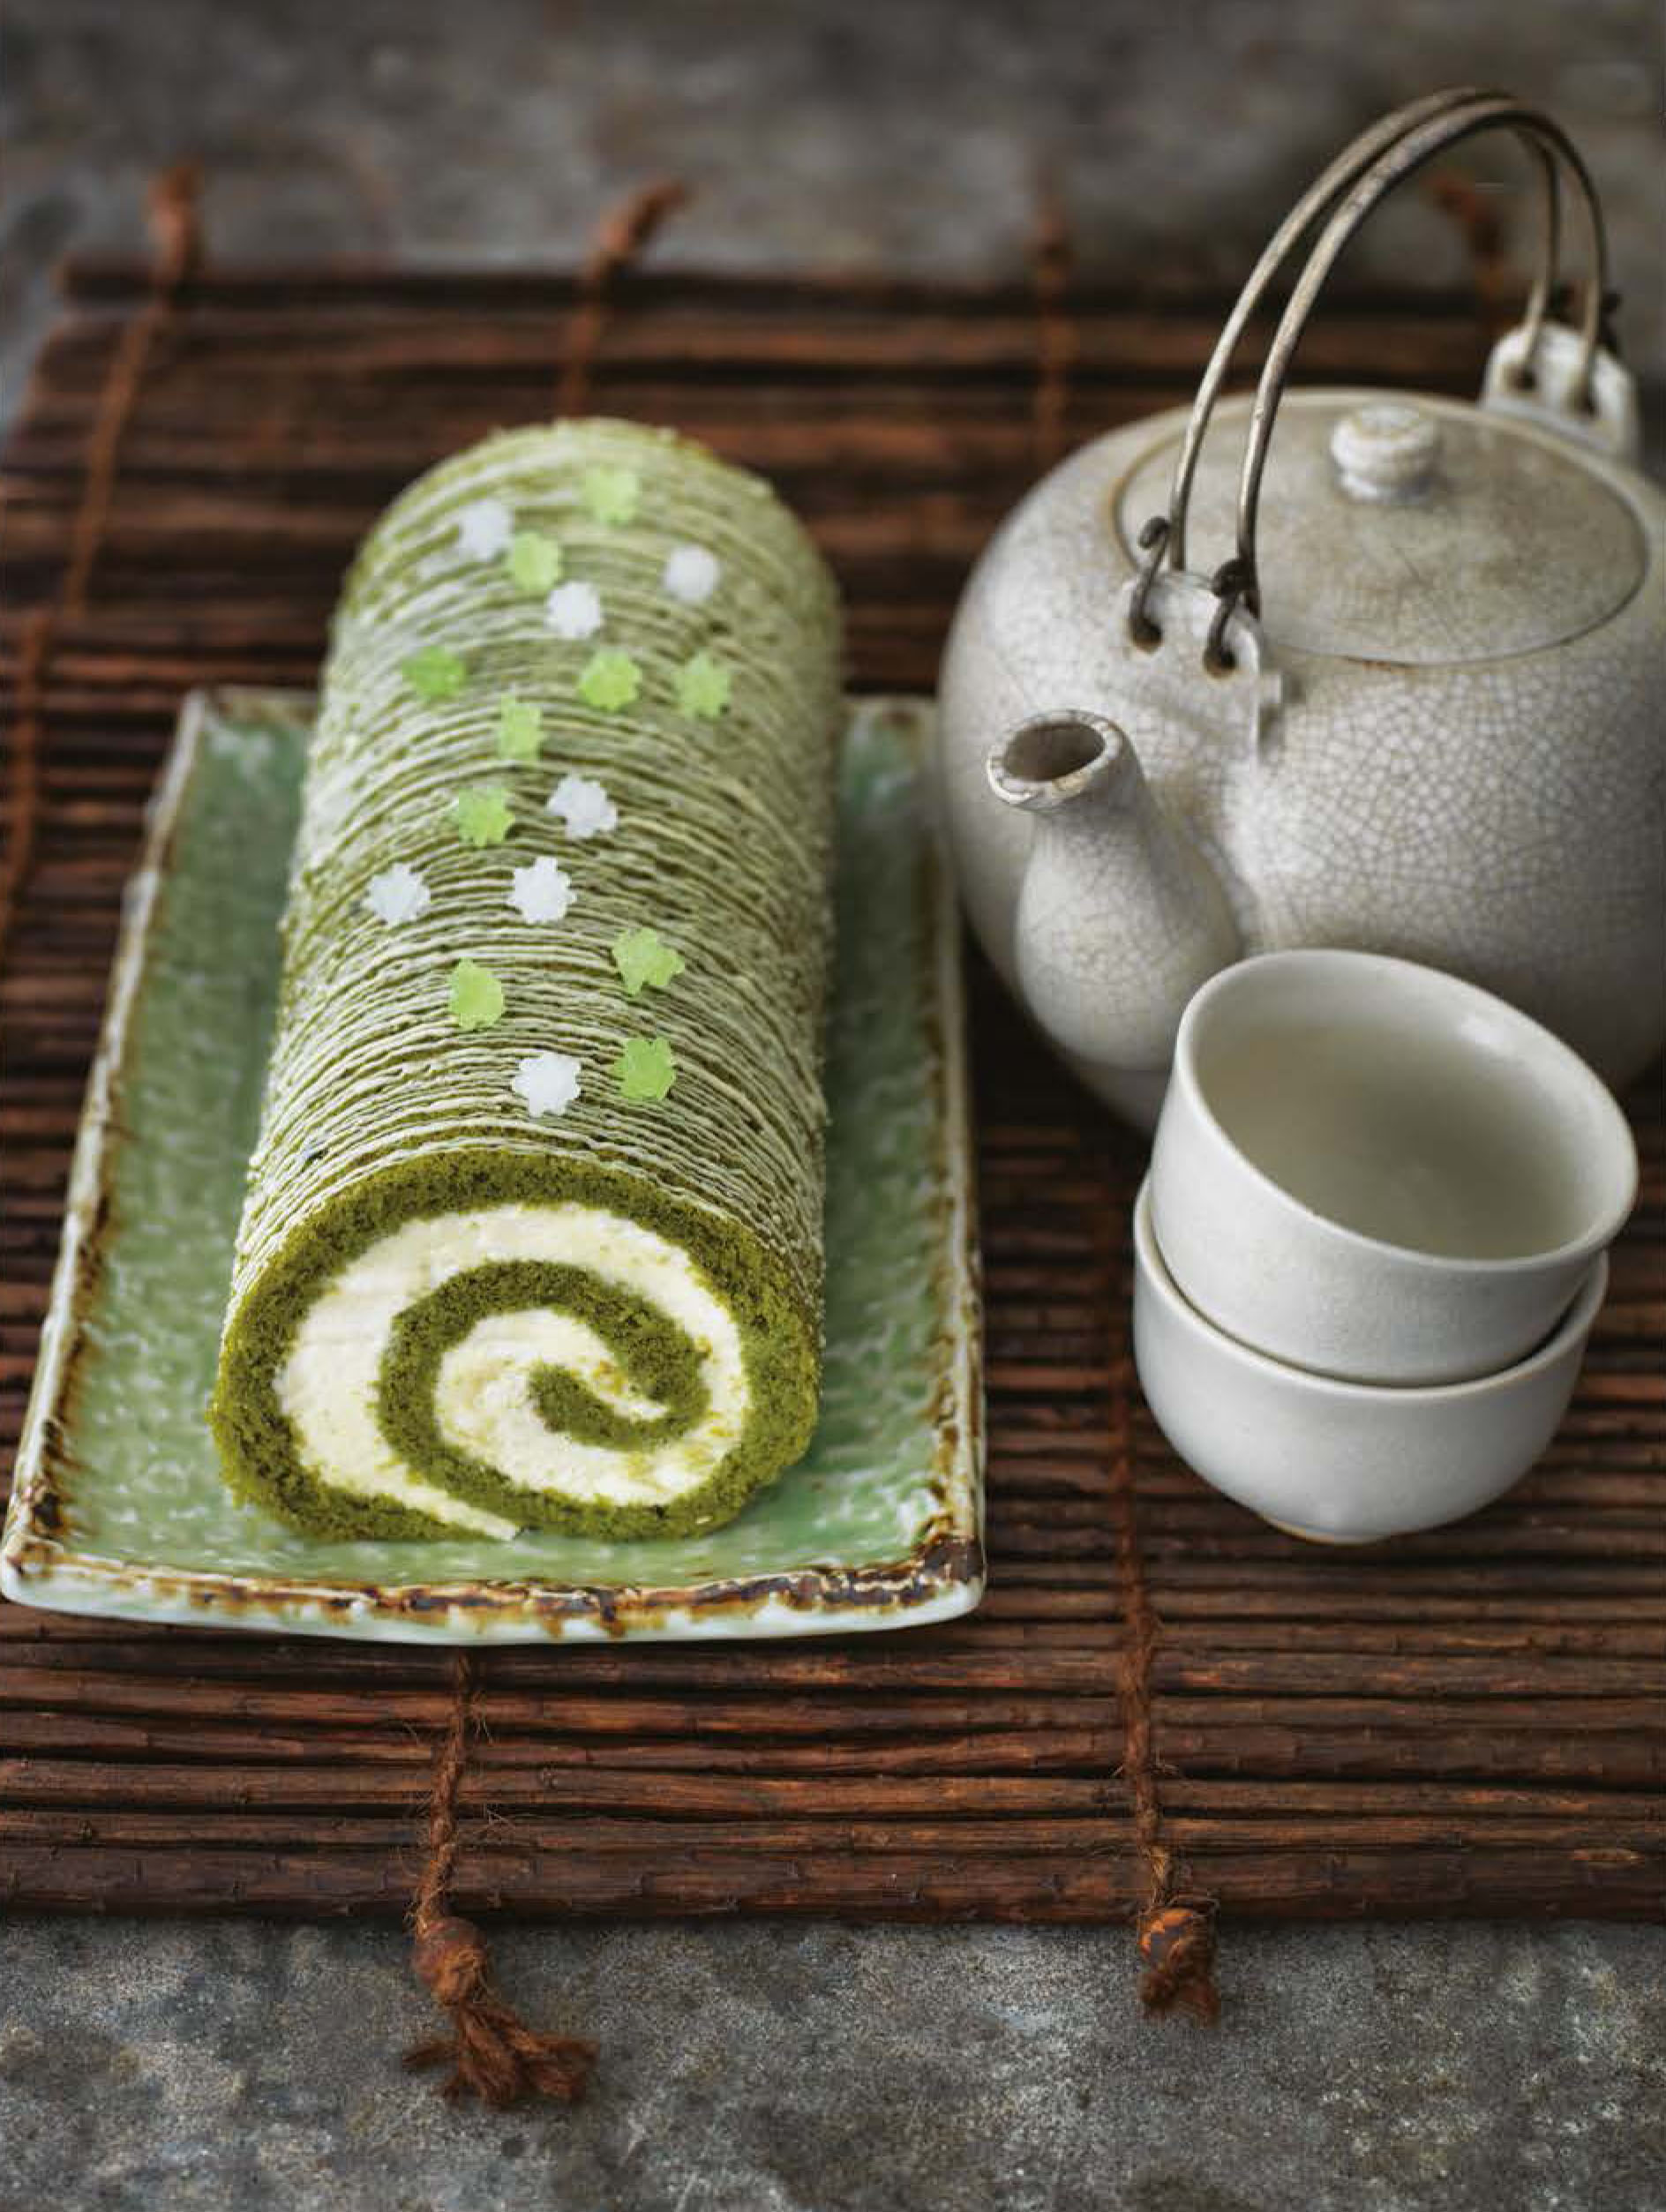 Green tea roulade